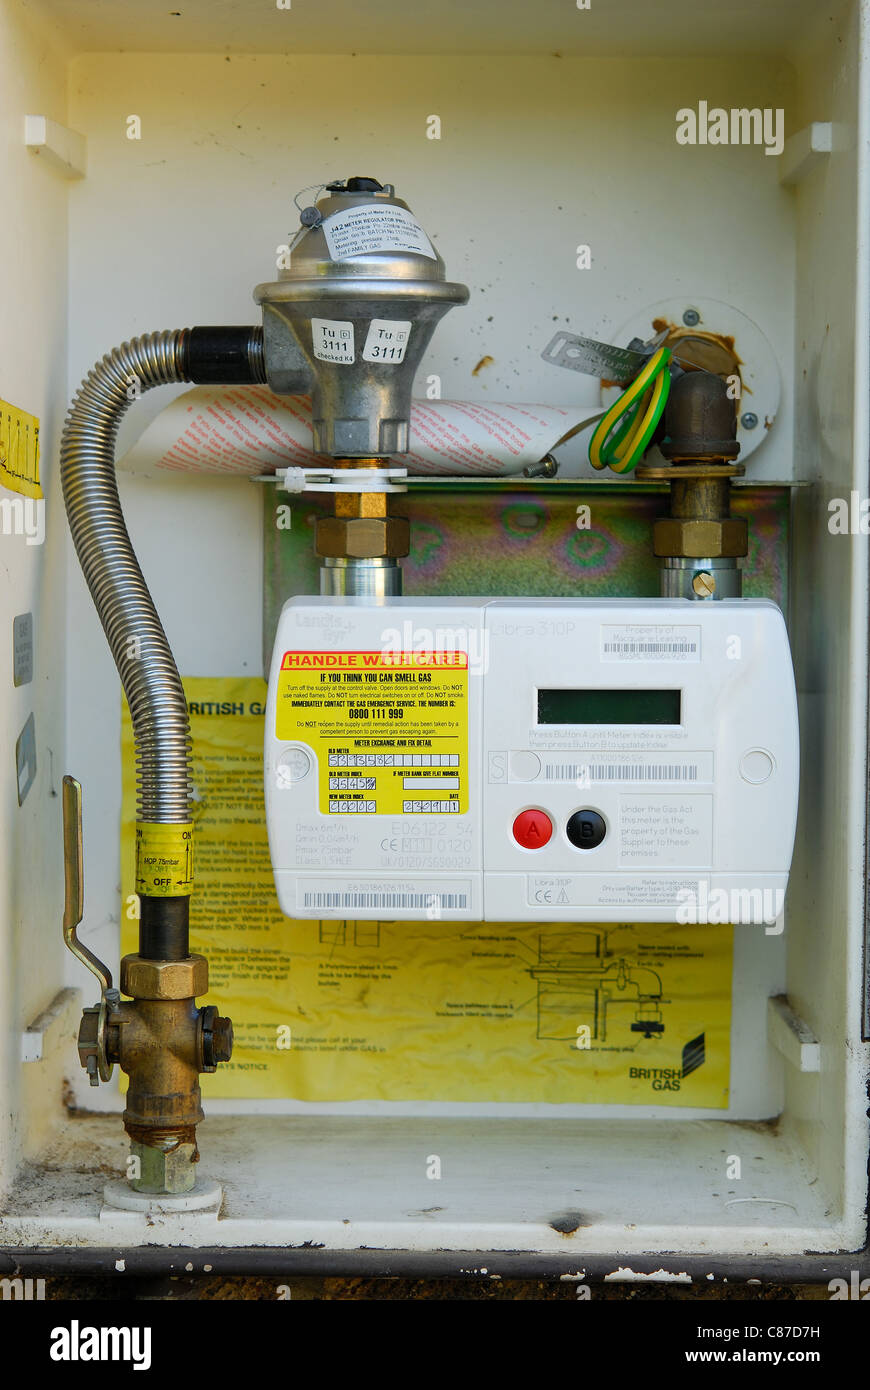 A modern domestic 'smart' gas meter. UK, 2011. - Stock Image